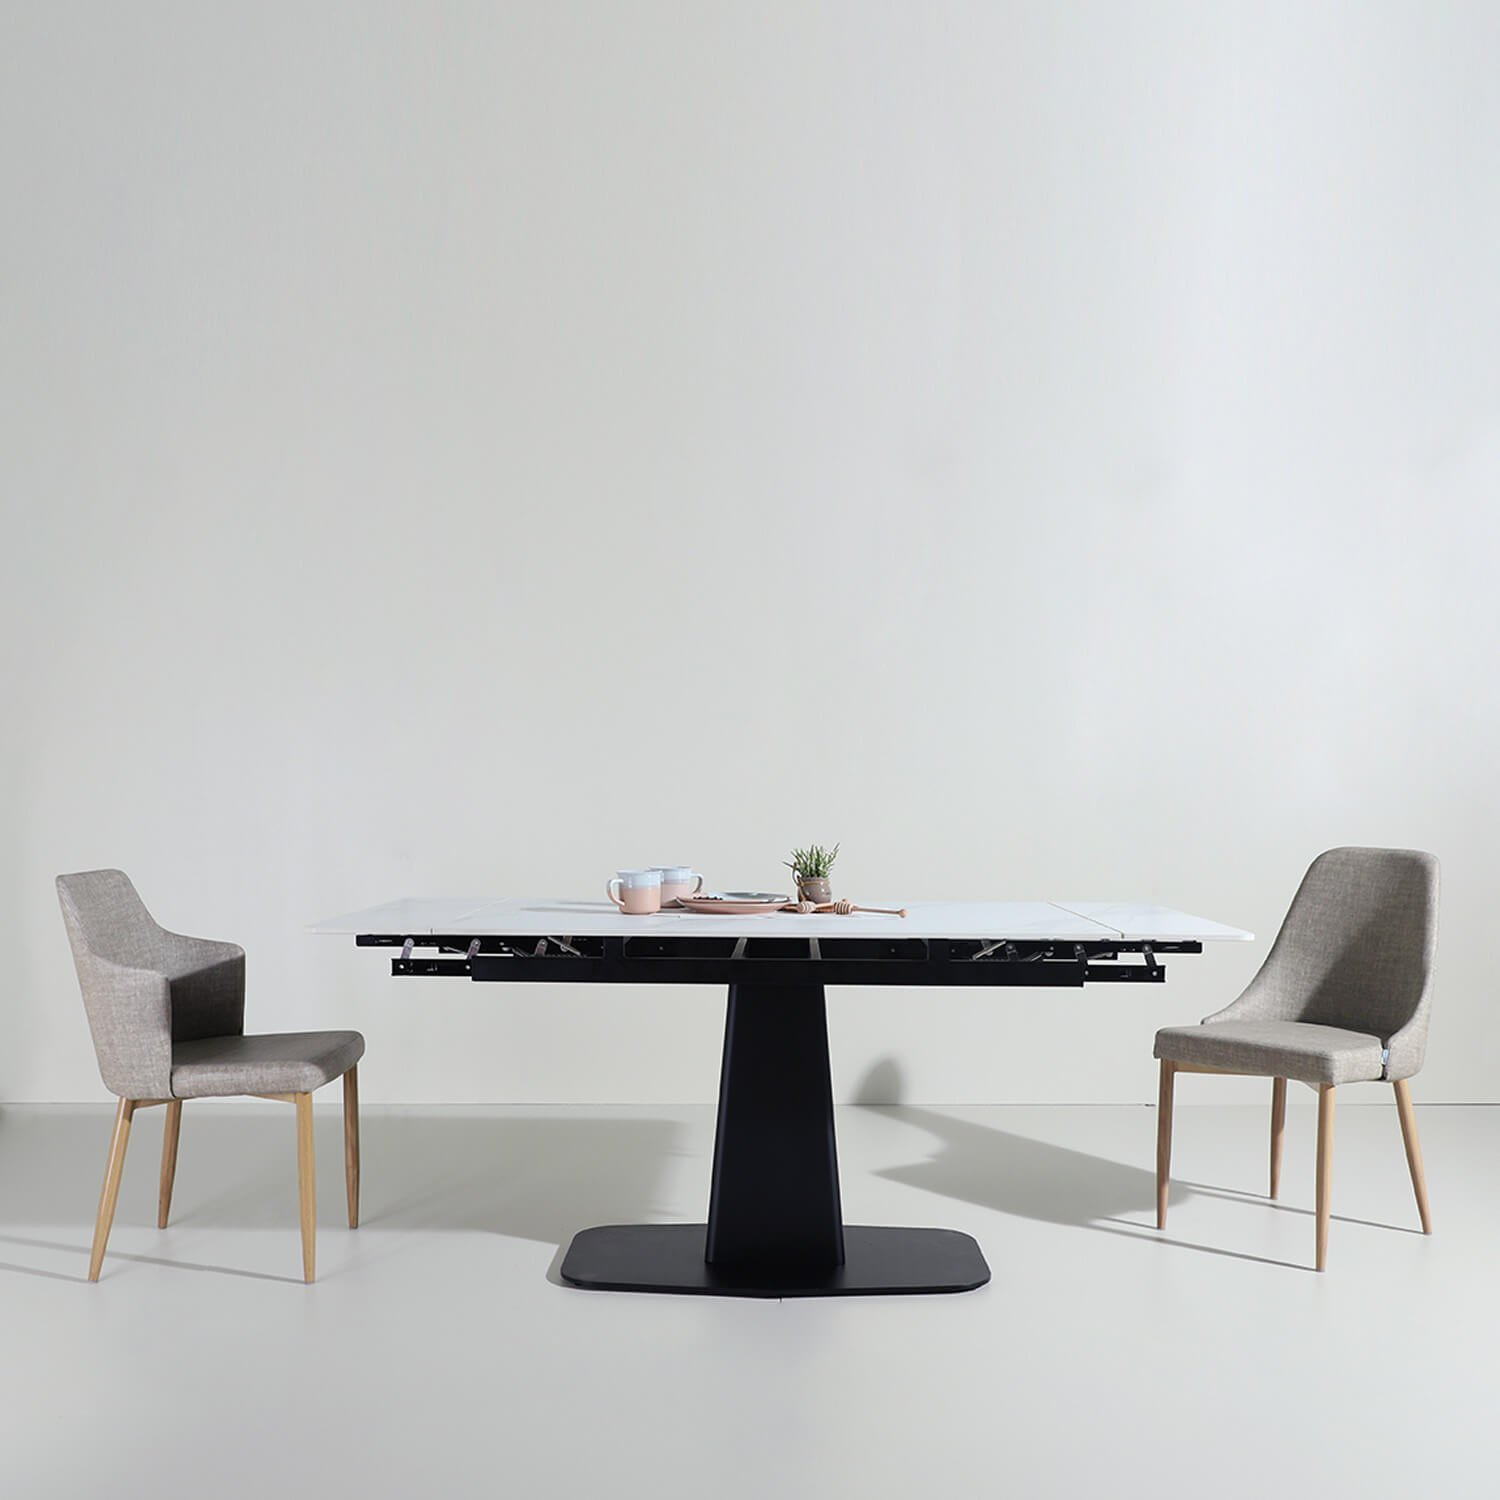 Aesthetic Yet Space-Saving Dining Table with Dining Chair - Comfort Furniture